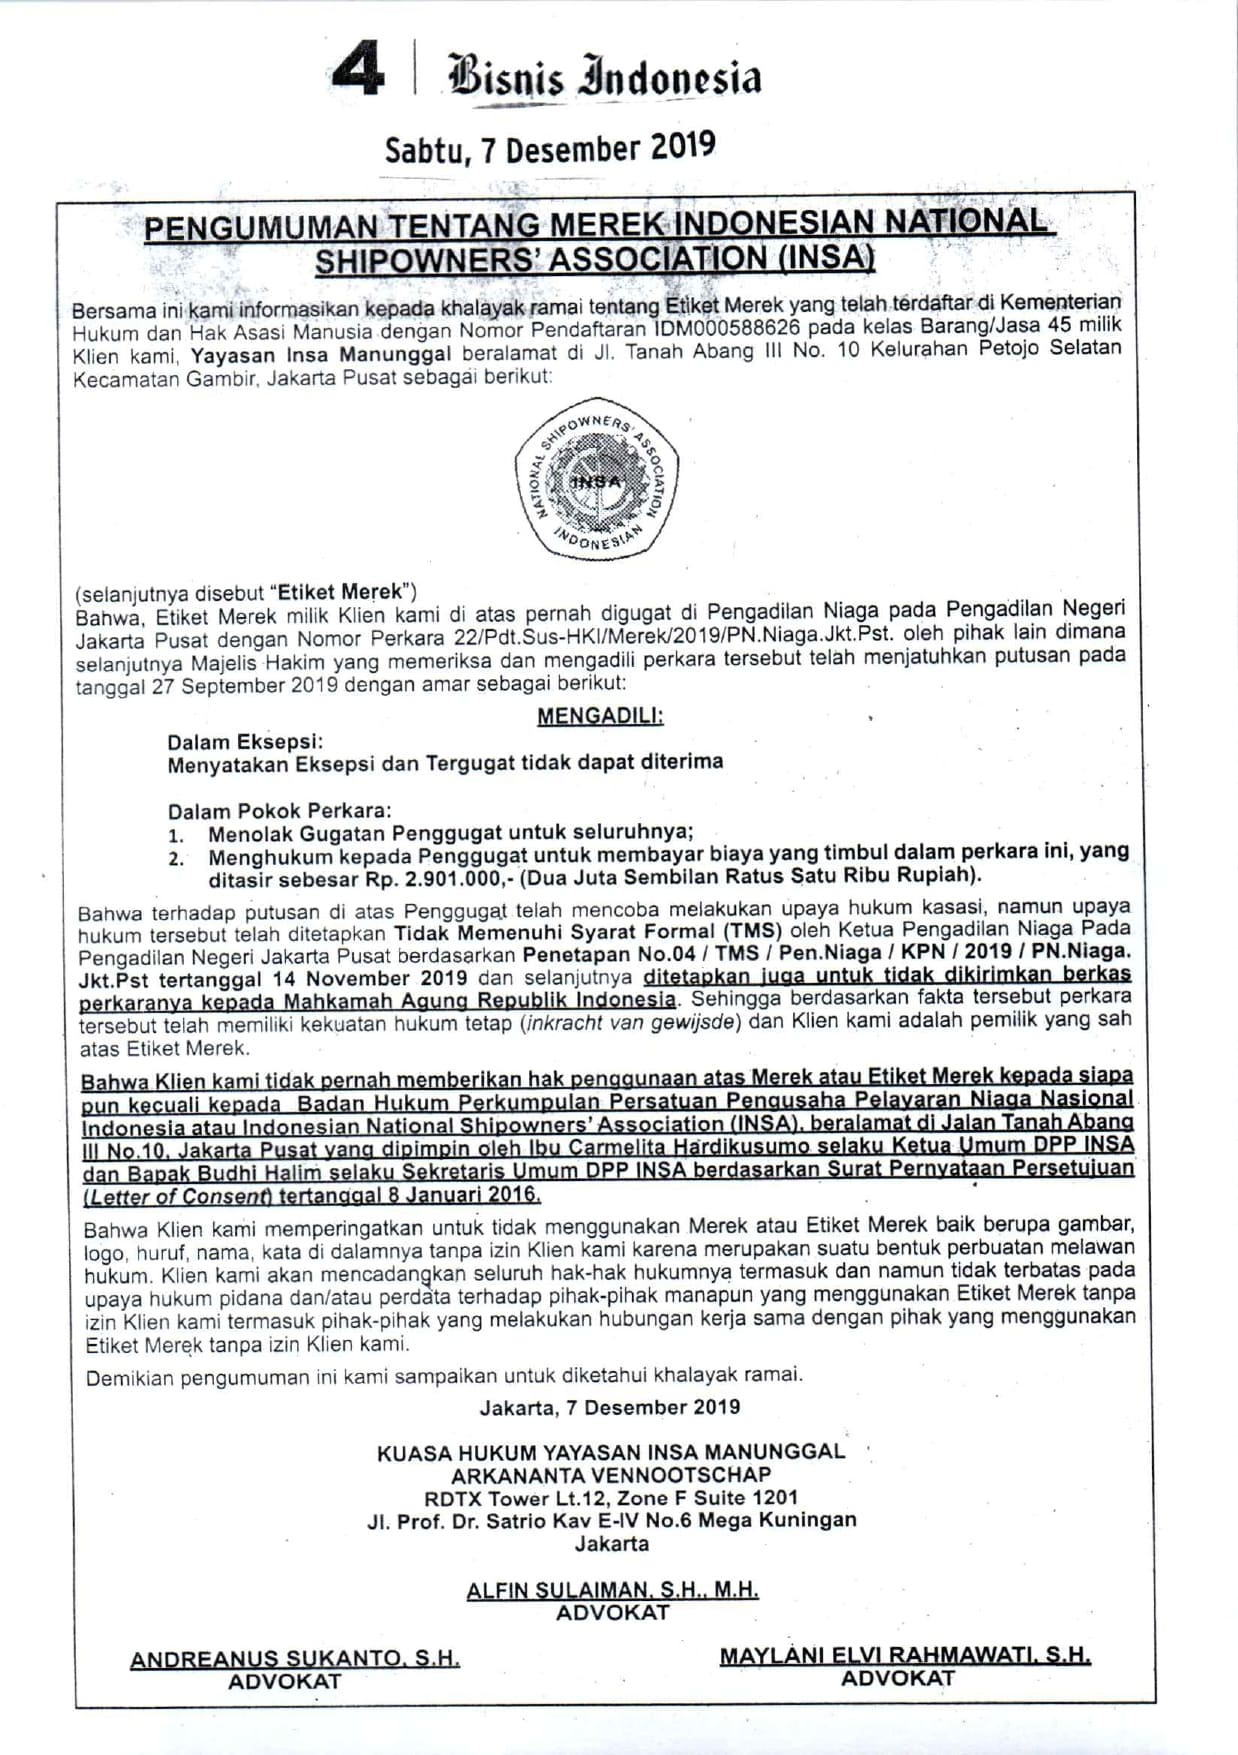 PENGUMUMAN TENTANG MEREK INDONESIAN NATIONAL SHIPOWNERS' ASSOCIATION (INSA)